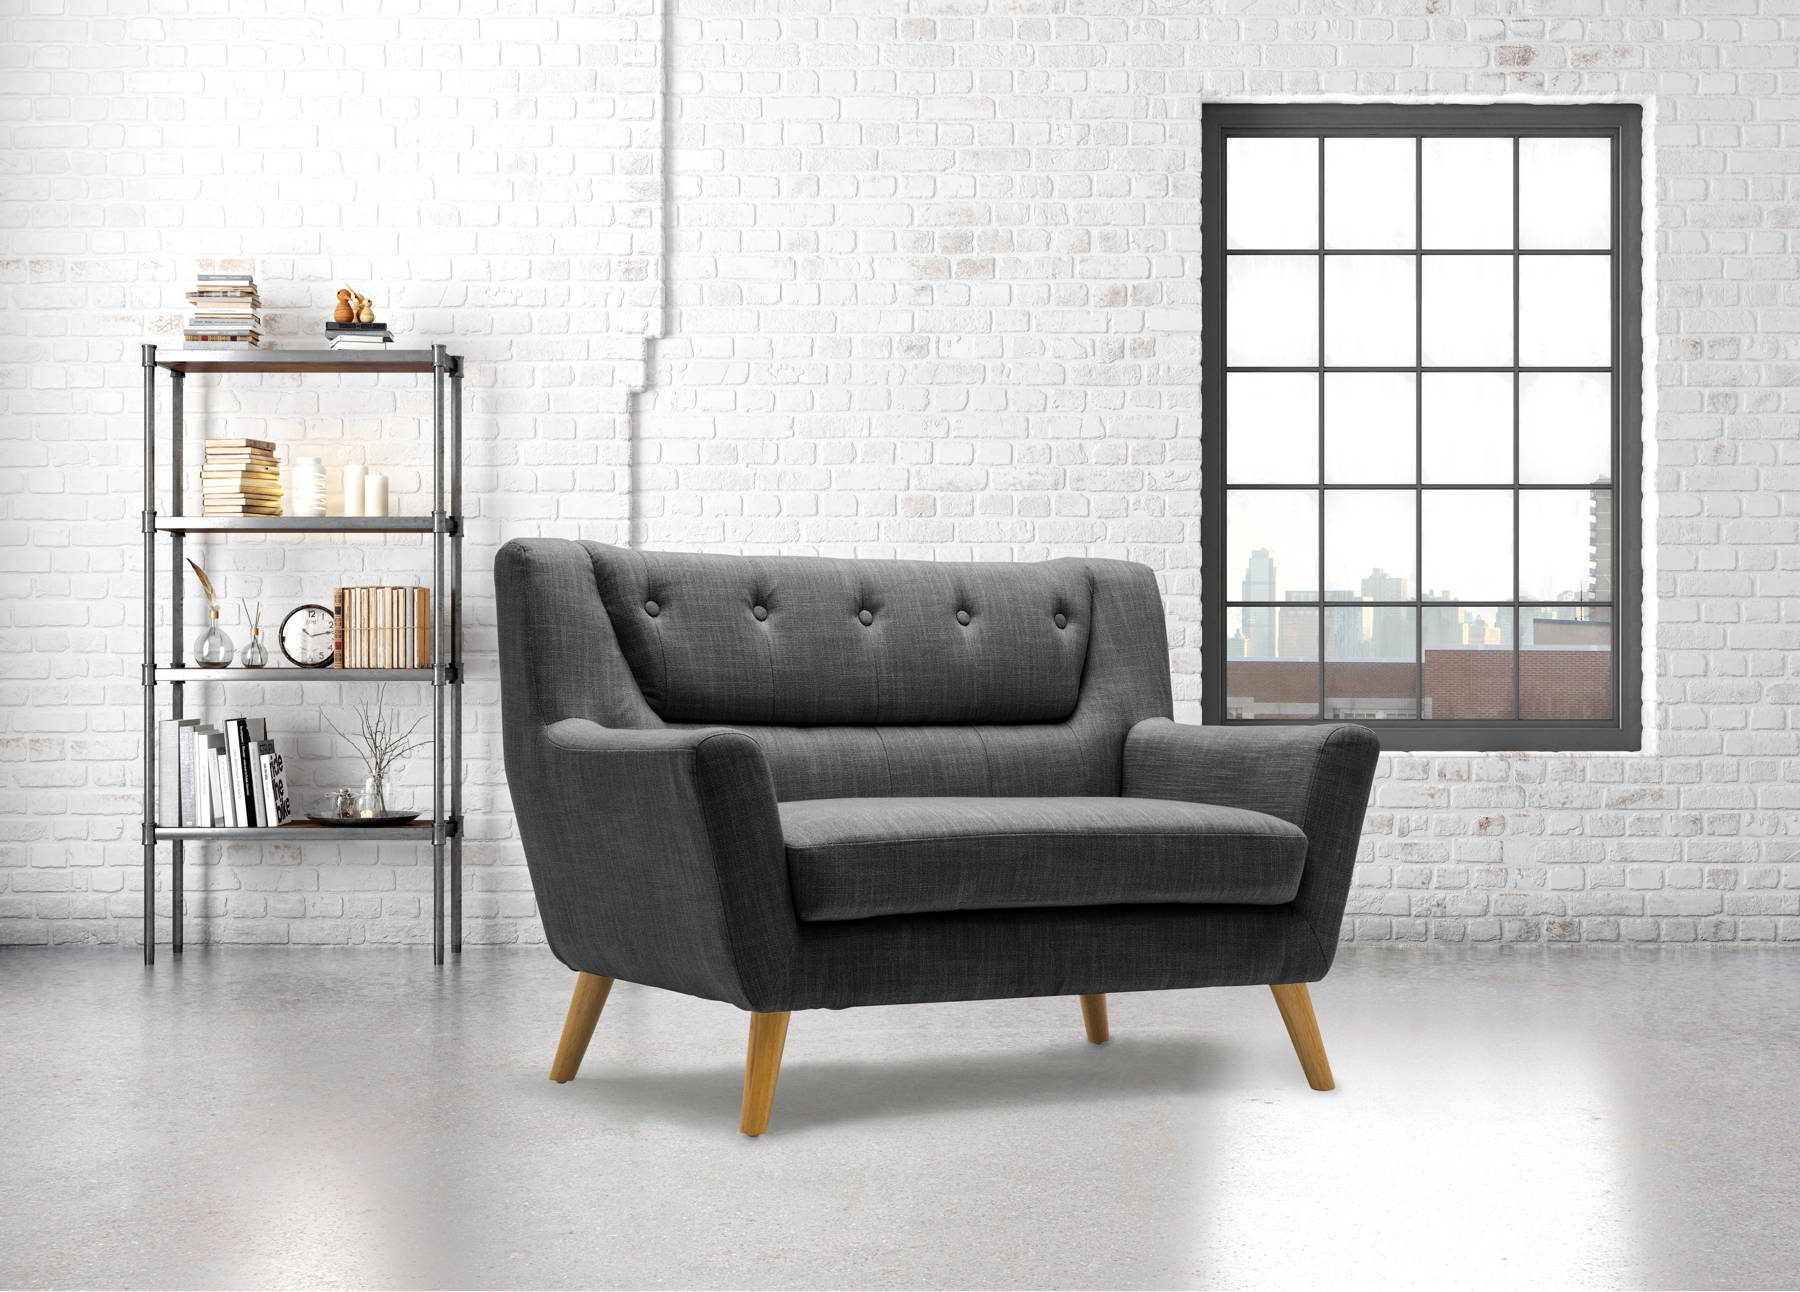 Stockwell 2 Seater Sofa in Grey - Ezzo